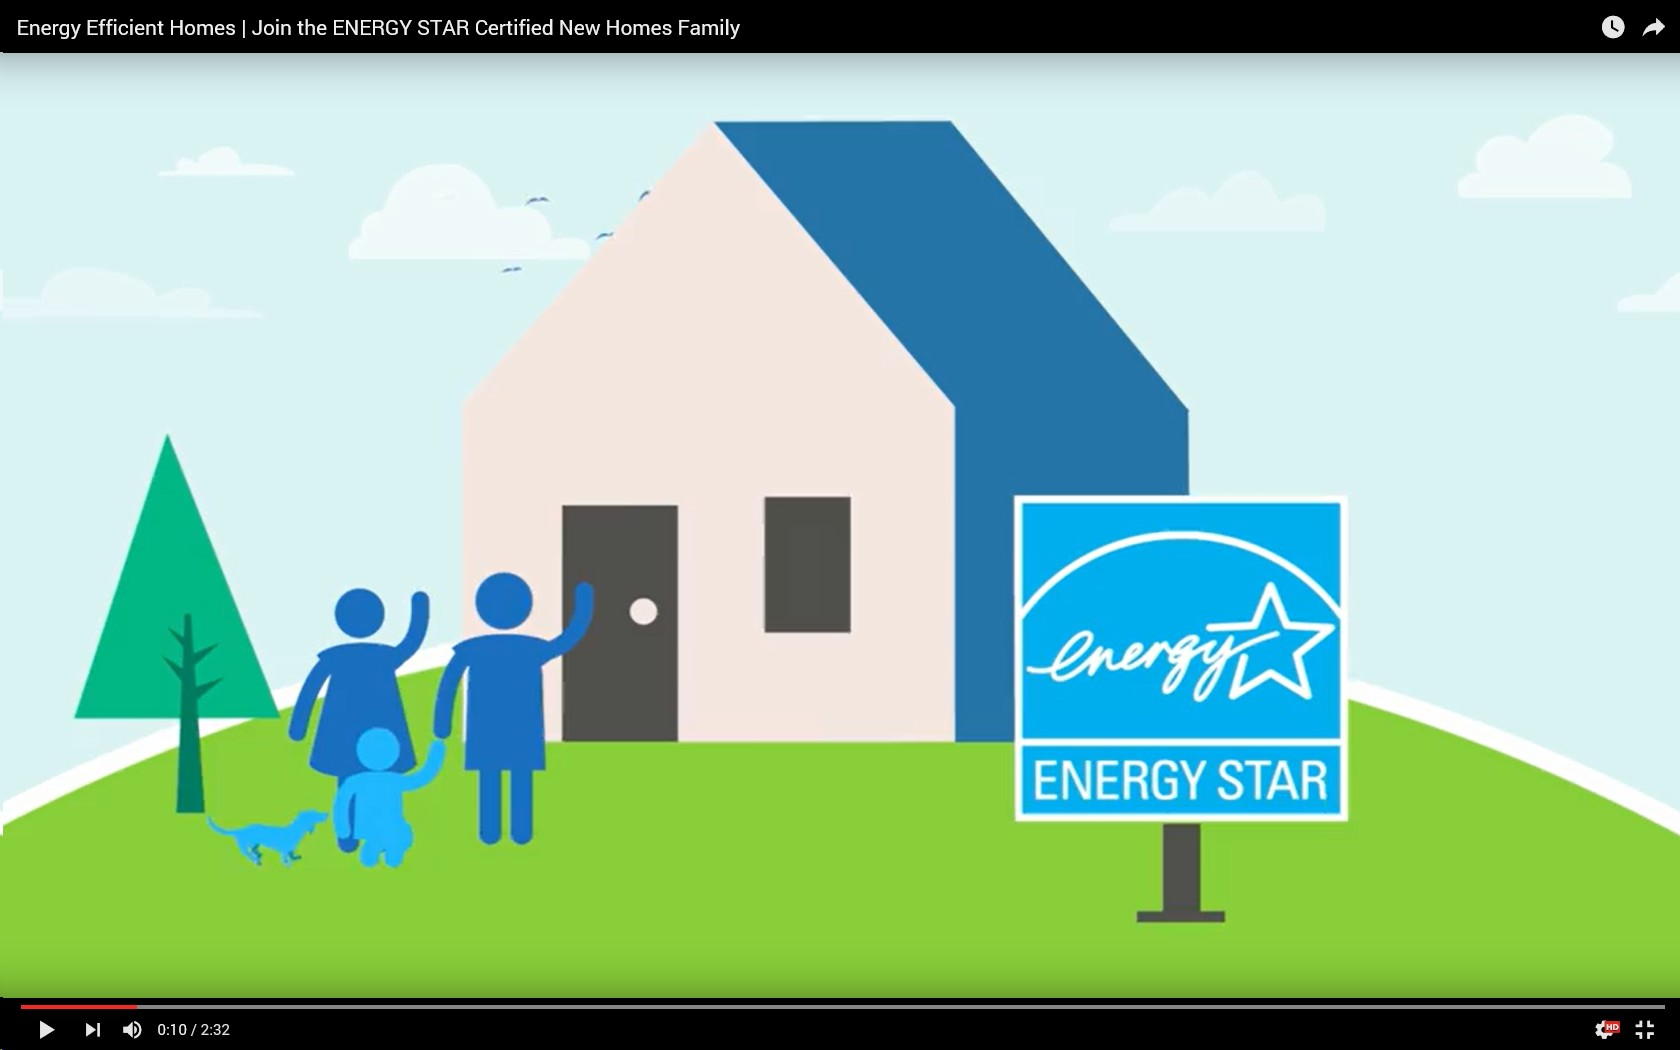 Animated Video - Join the ENERGY STAR Certified Homes Family